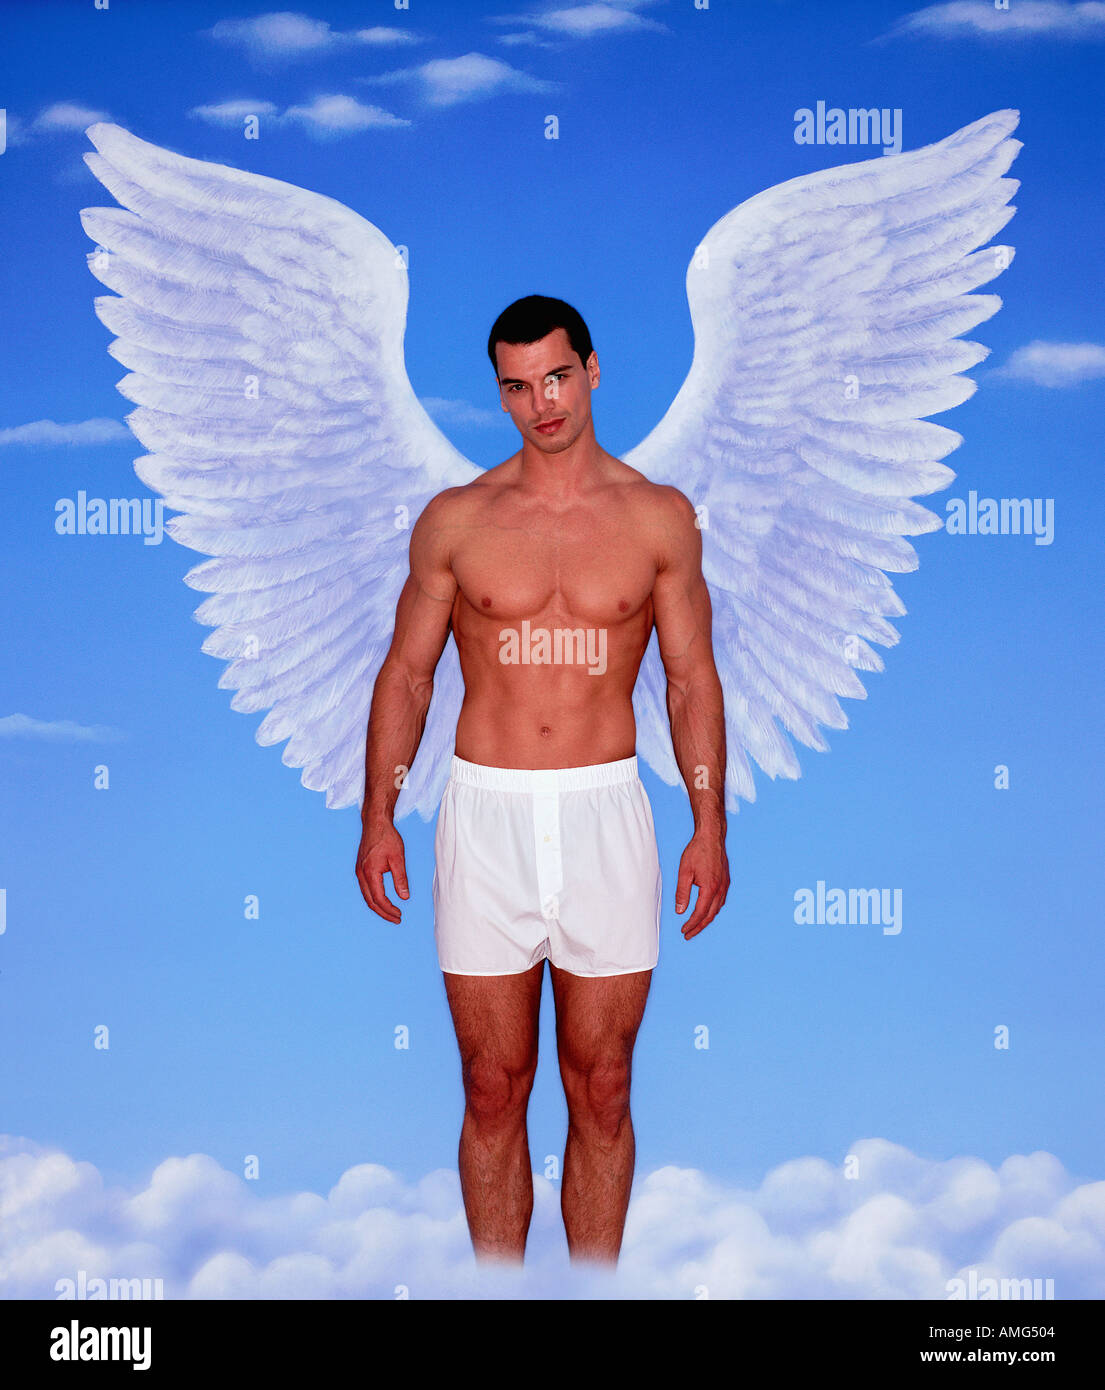 A portrait of a young man in white boxer shorts and wings against blue sky background - Stock Image